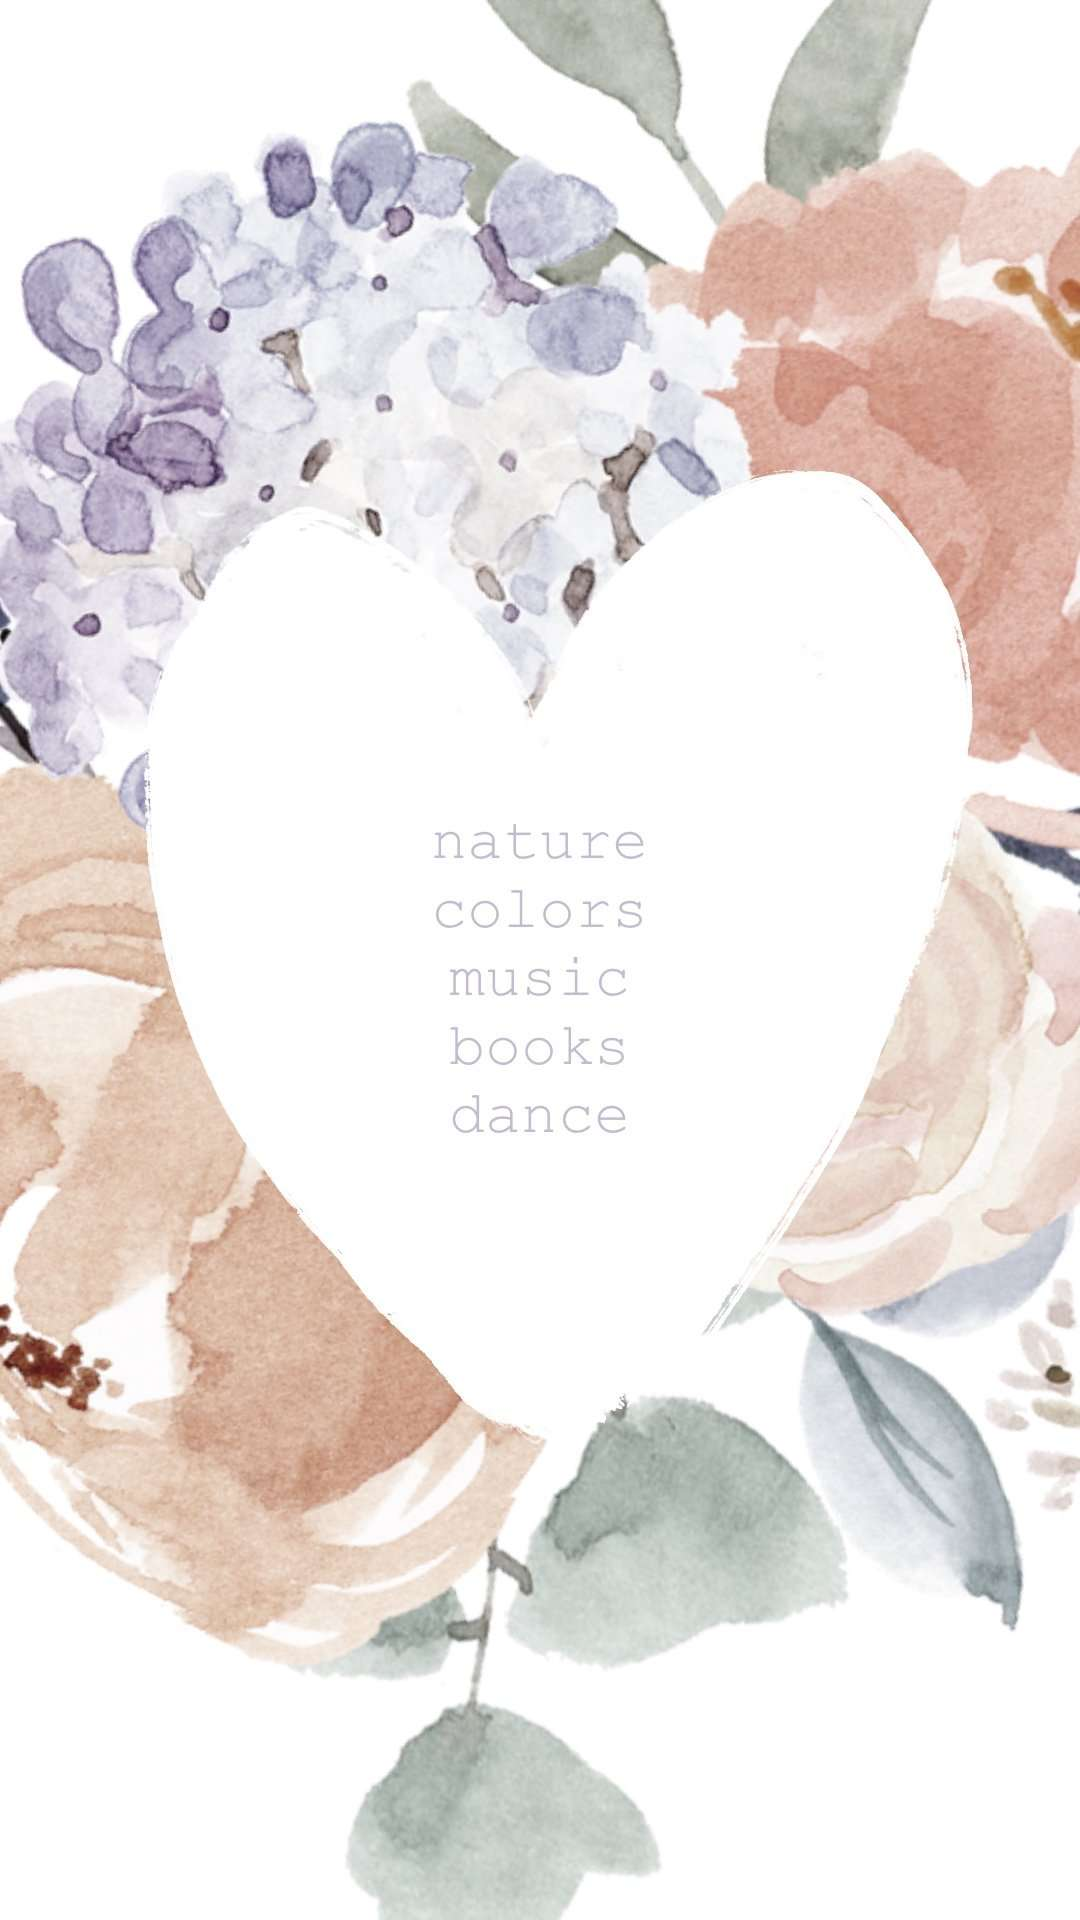 Watercolor Motivational Quote, Inspirational Quote from Essem Creatives, iPhone Wallpaper Lockscreen, Nature Colors Music Books Dance